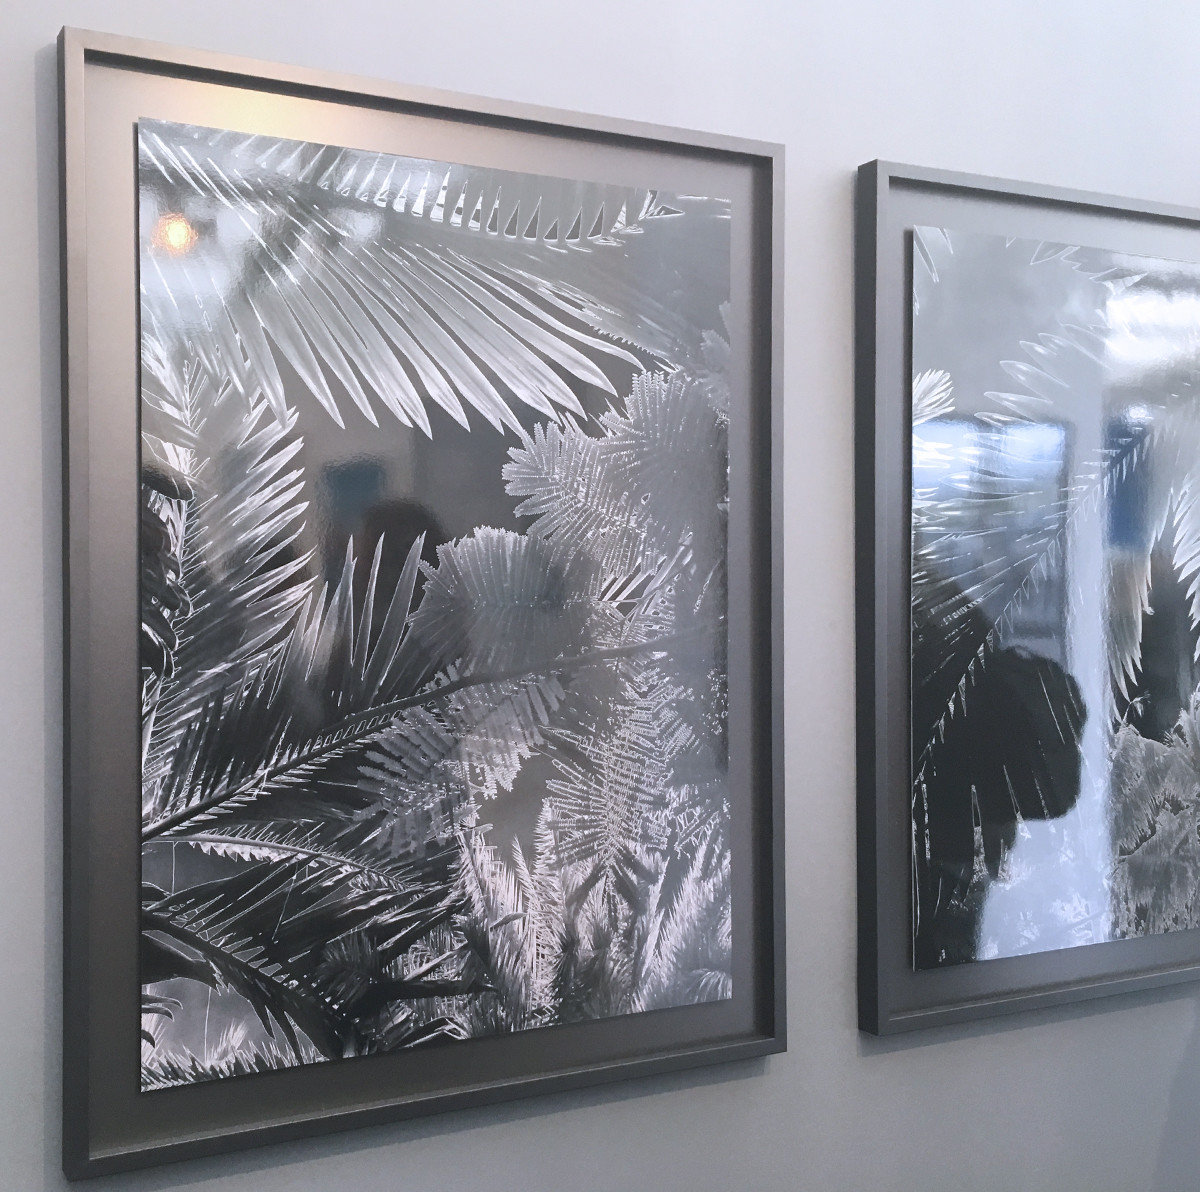 With Photo London 2018 just around the corner, we look at the photography and artists to visit at these years fair and satellite events. THE WORK 'Black Palms' by Karine Laval One of the highlights for us last year was working with   Crane Kalman Gallery again and producing these bespoke grey floating box-frames for Karine Laval's […]